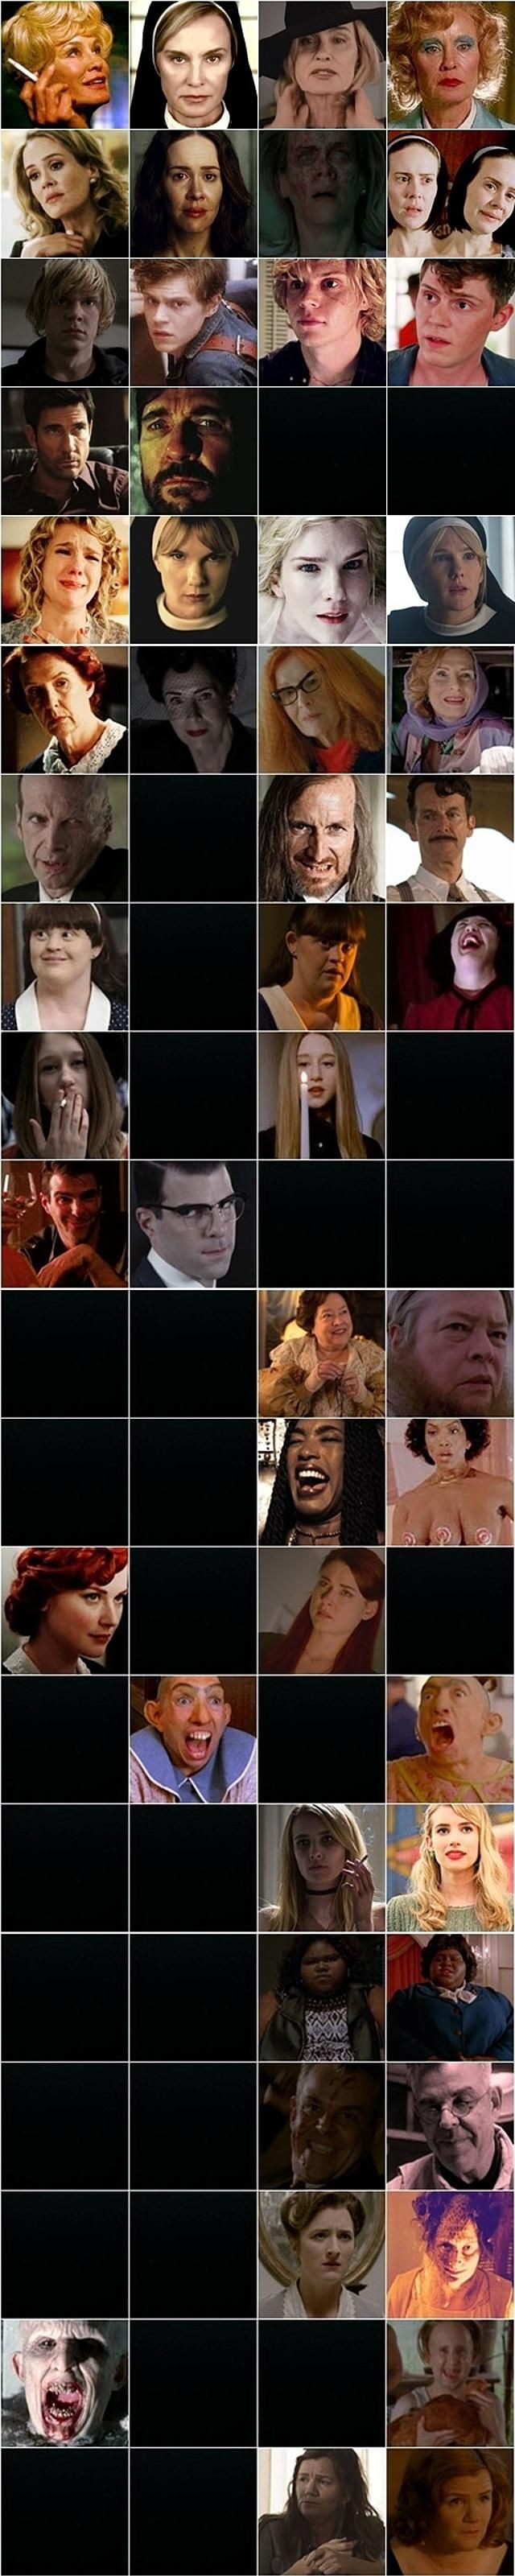 American Horror Story: Who's Coming Back in One Handy Infographic | moviepilot.com